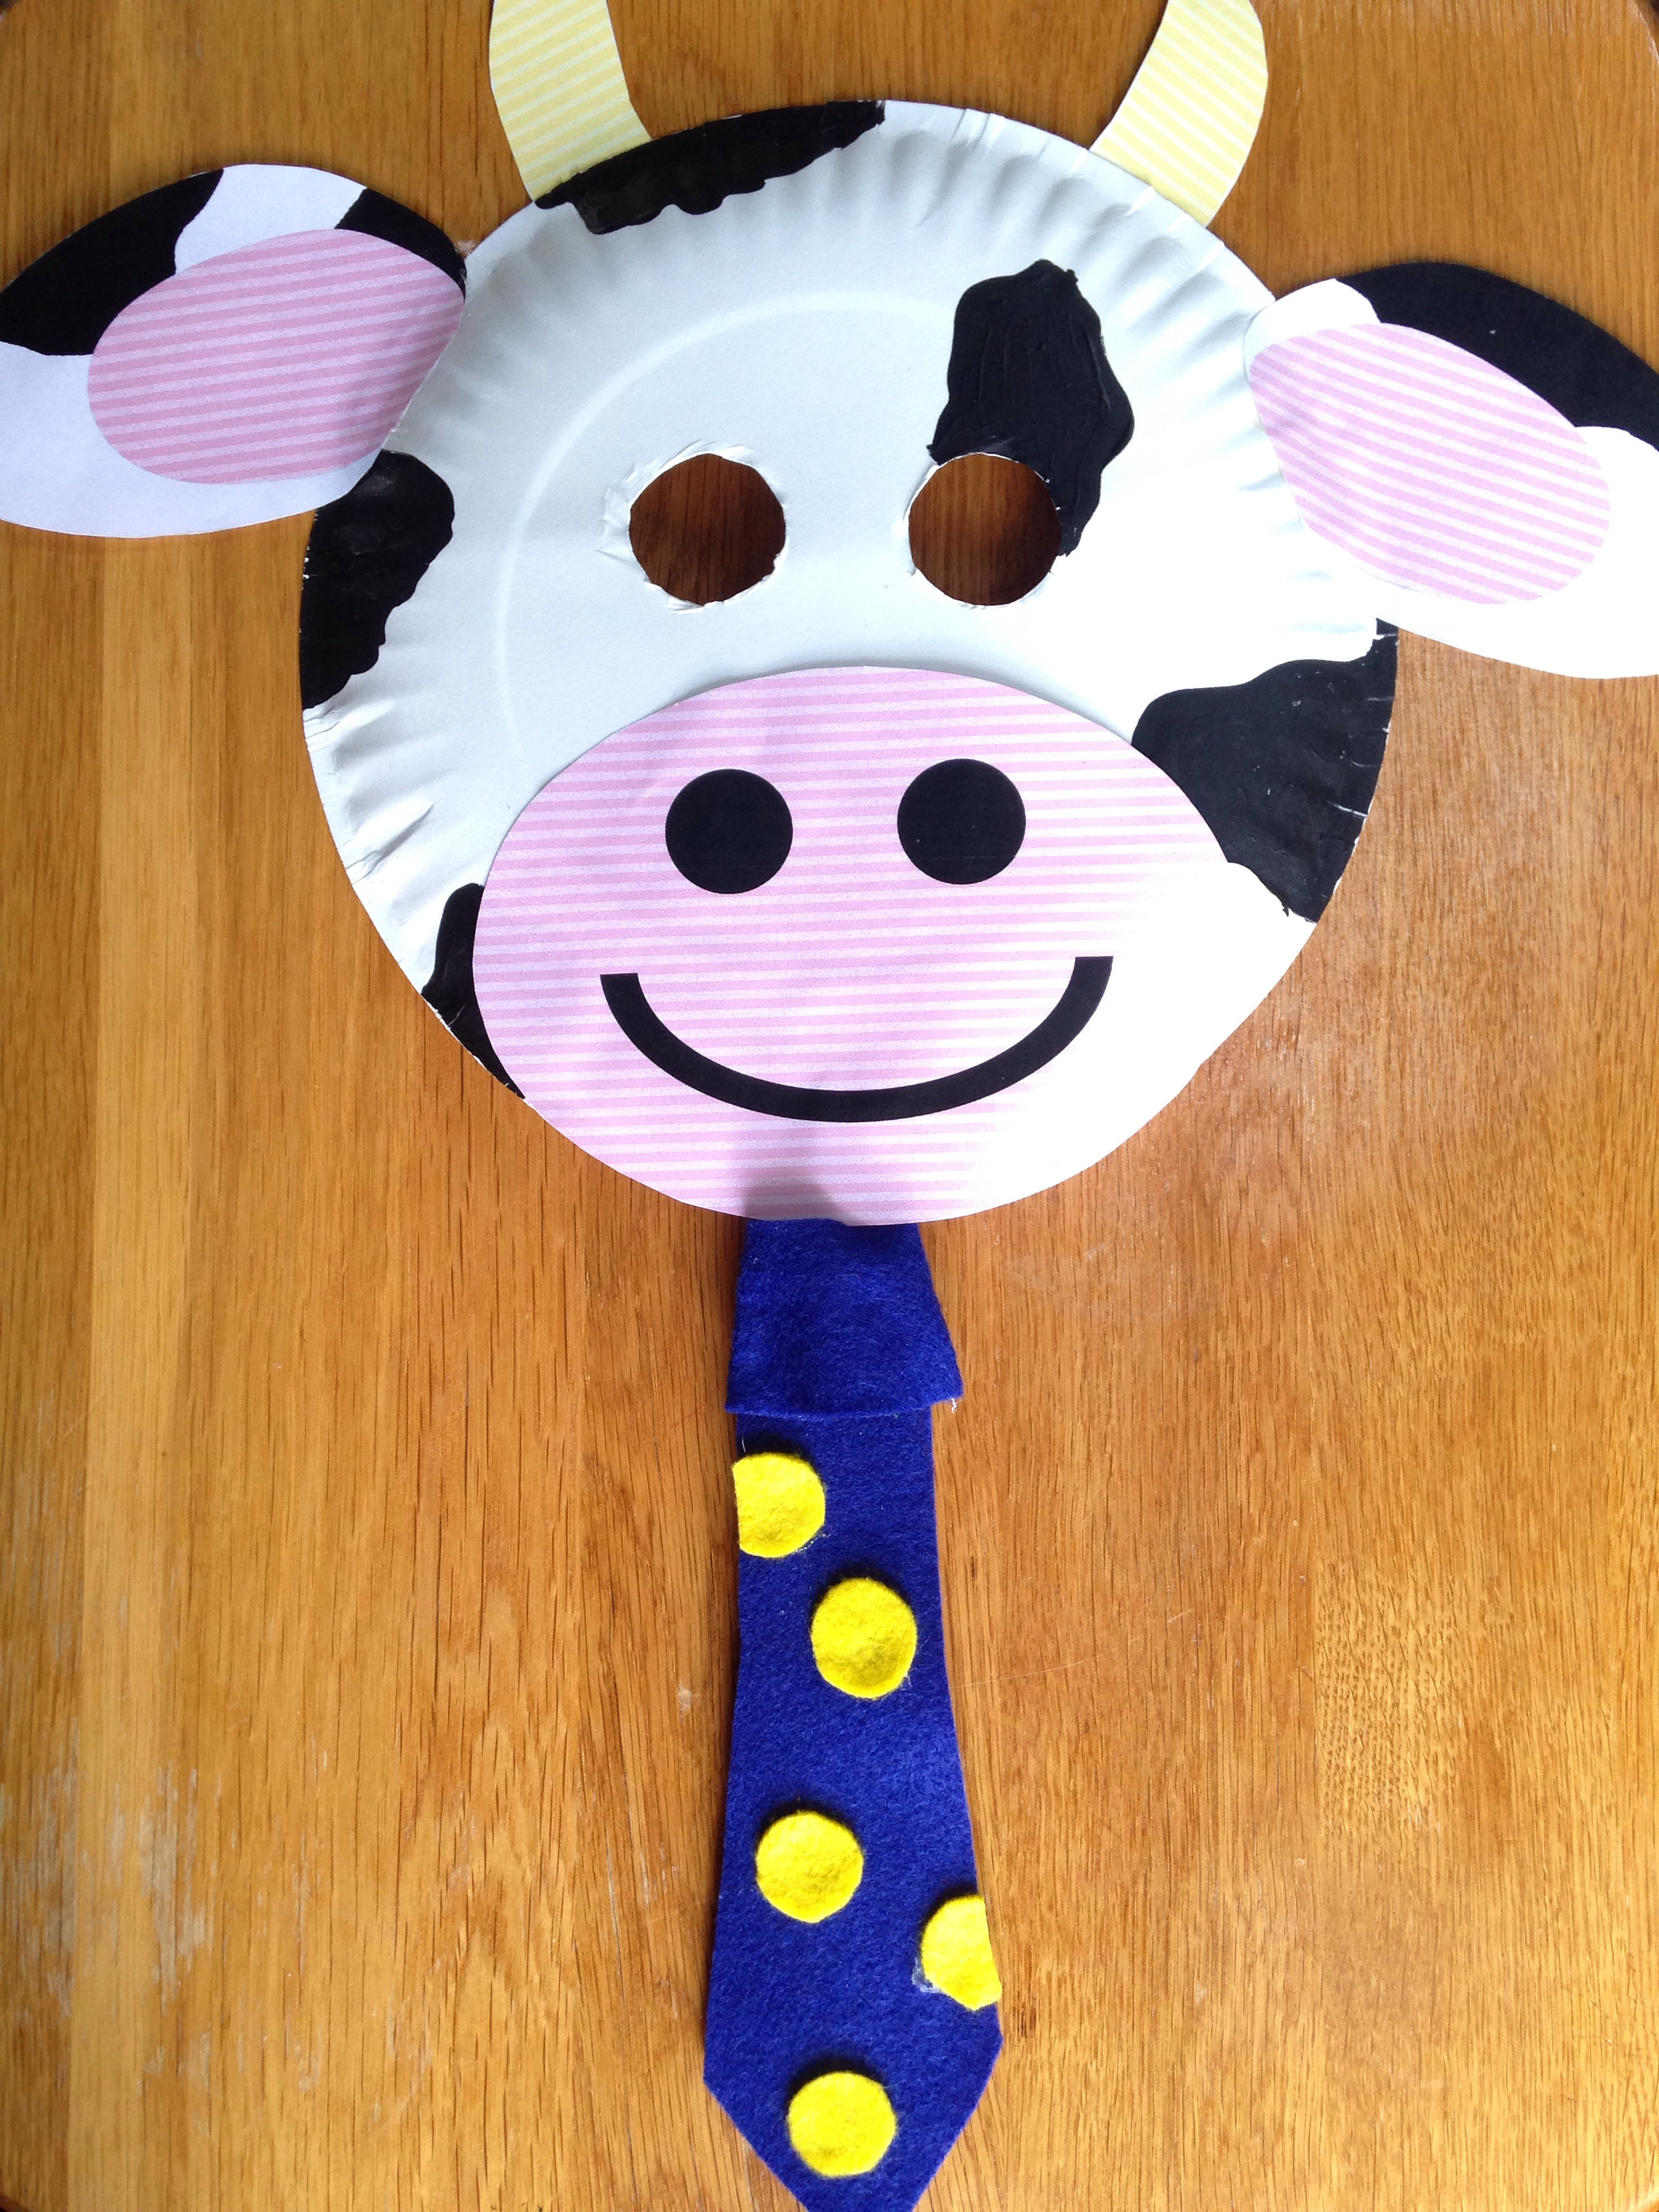 picture about Printable Cow Spots Chick Fil a titled Chick-fil-A Cow Working day Paper Plate Cow Masks With No cost